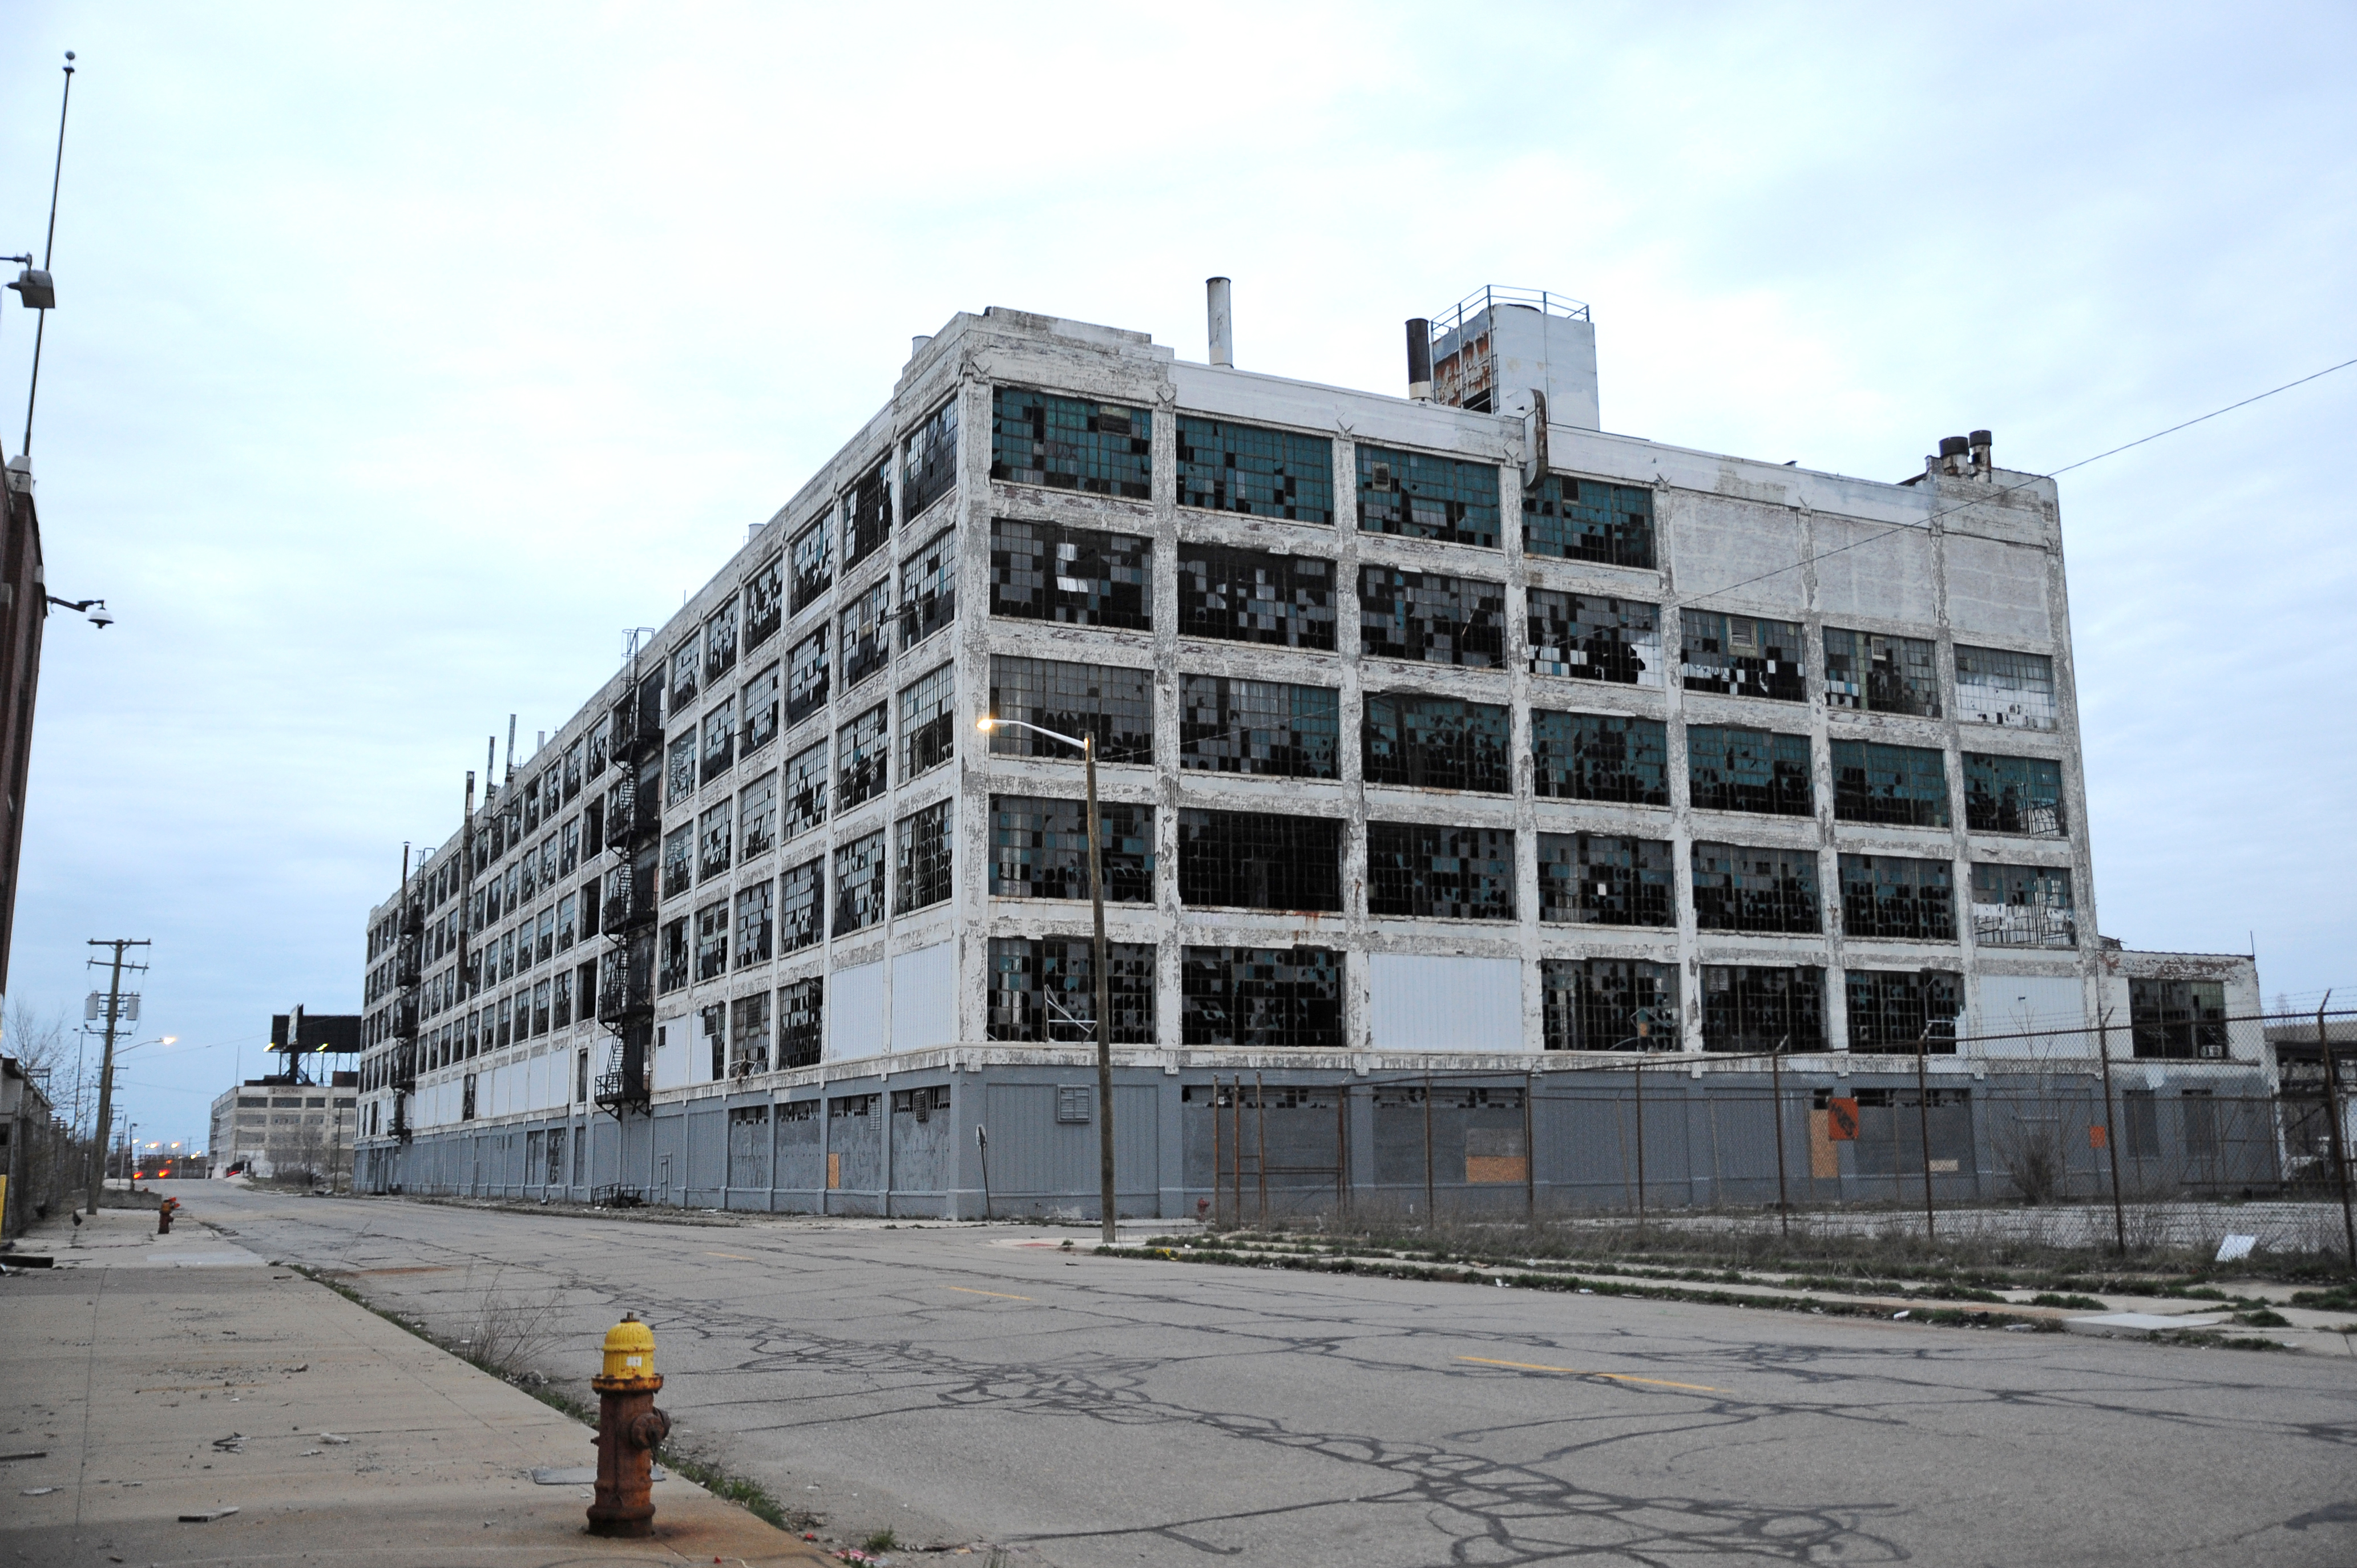 The abandoned Packard auto assembly plant stands in Detroit, Michigan, USA on April 13, 2017.